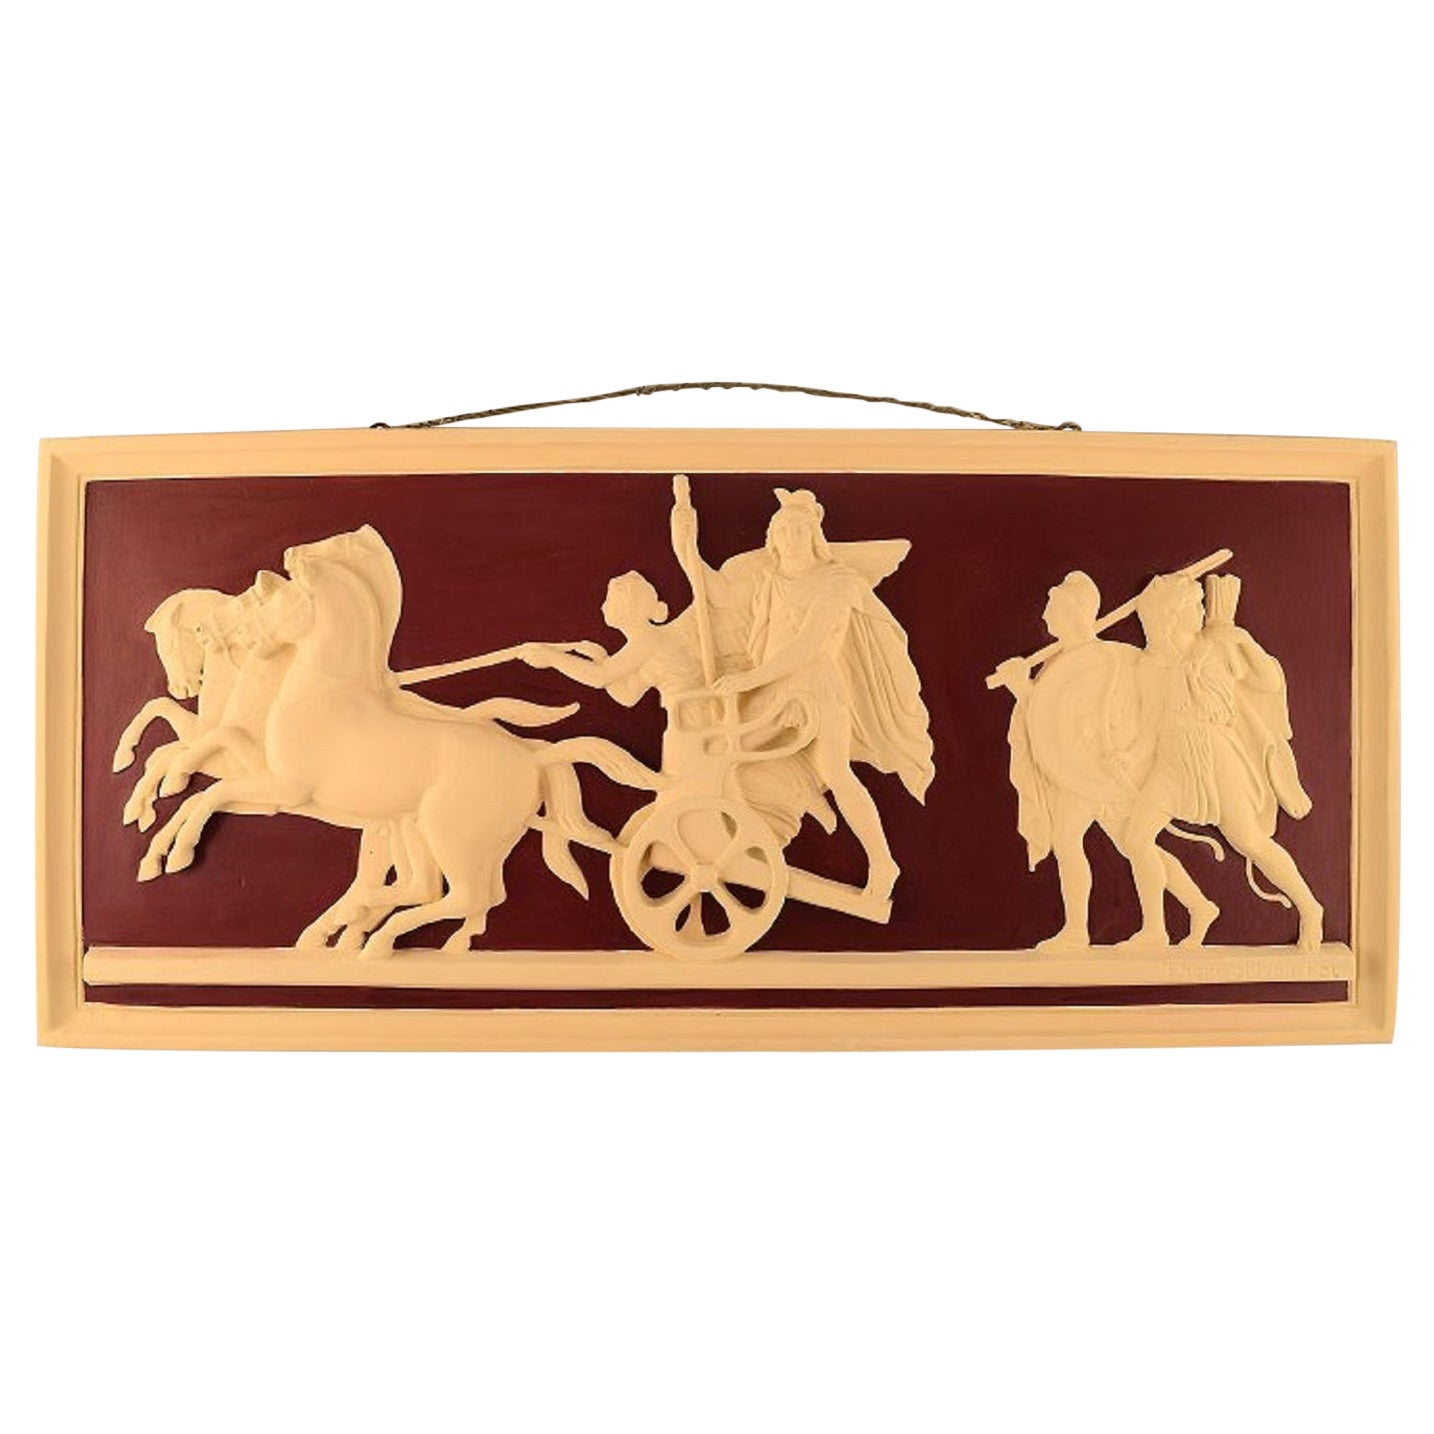 Colossal Plaster Wall Plaque with Motif by Thorvaldsen, Chariot with Four Horses